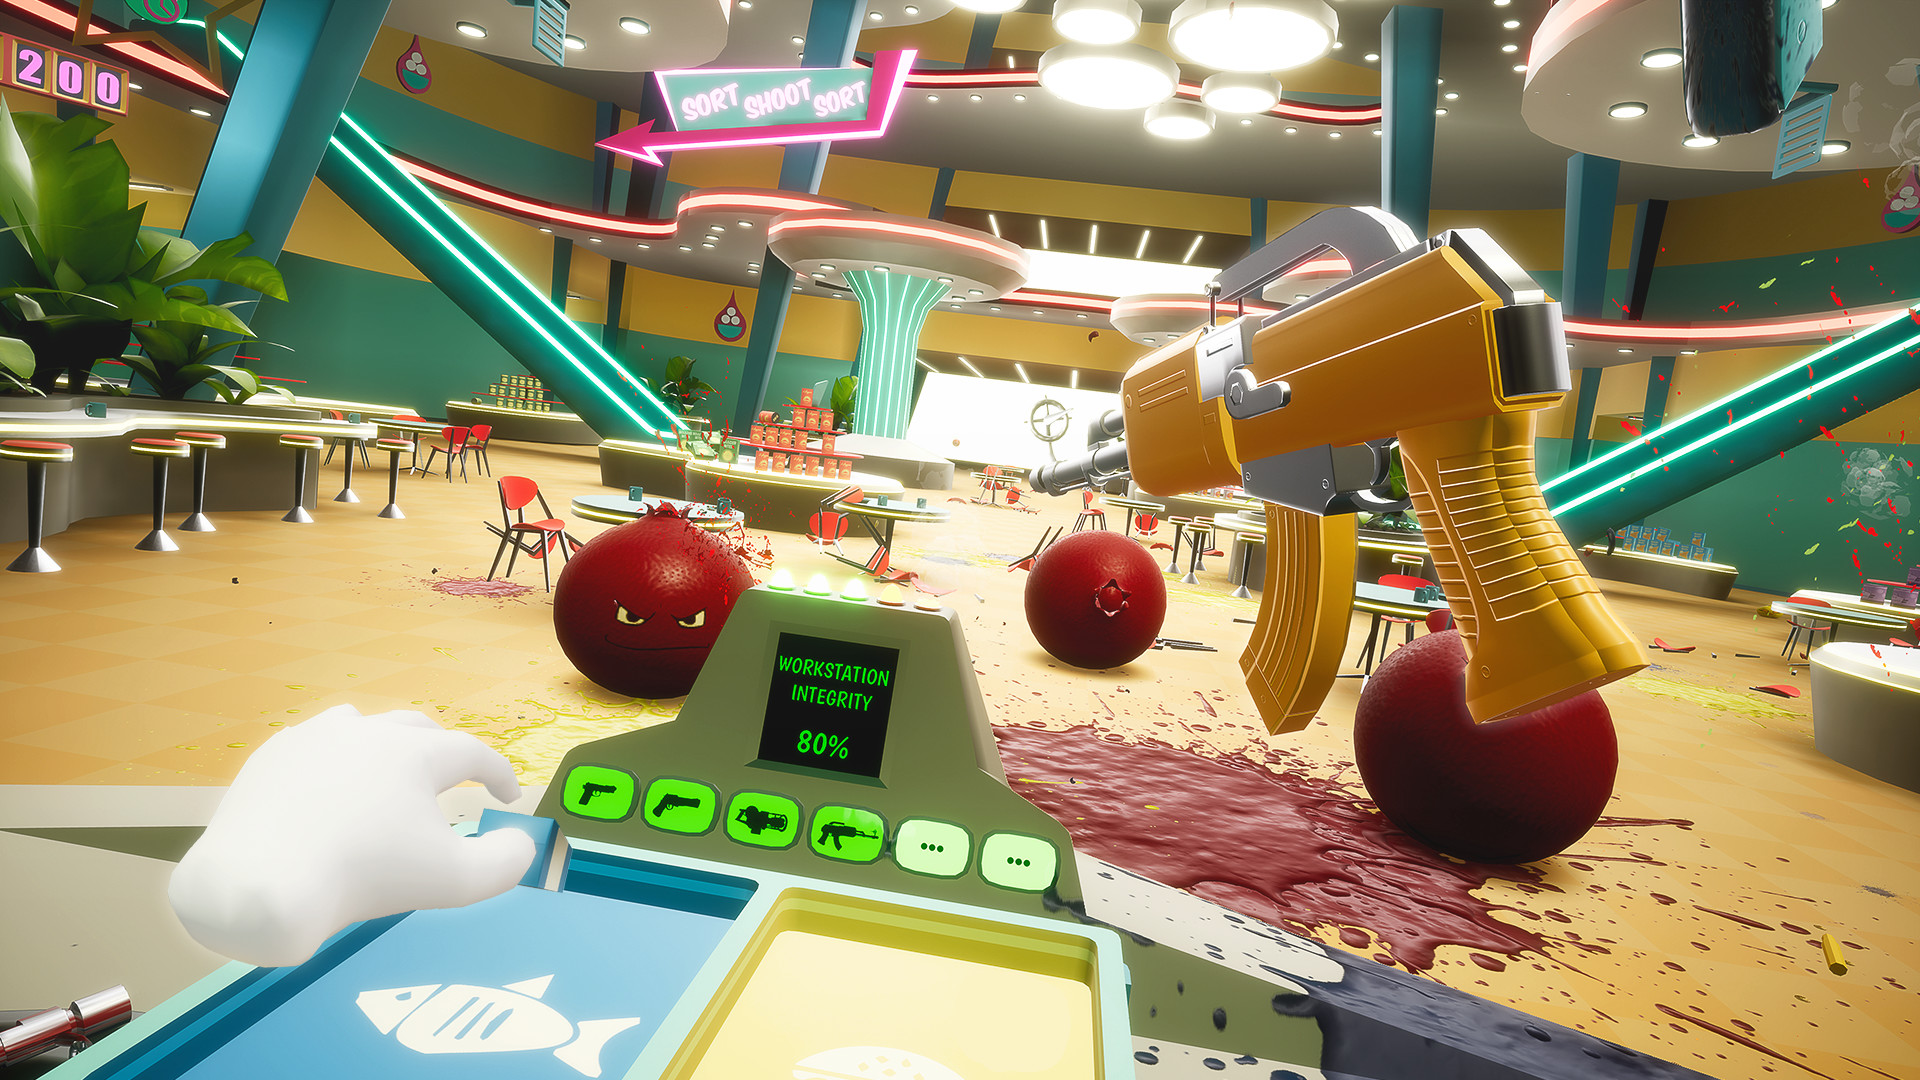 Shooty Fruity Gameplay Image 2.jpg